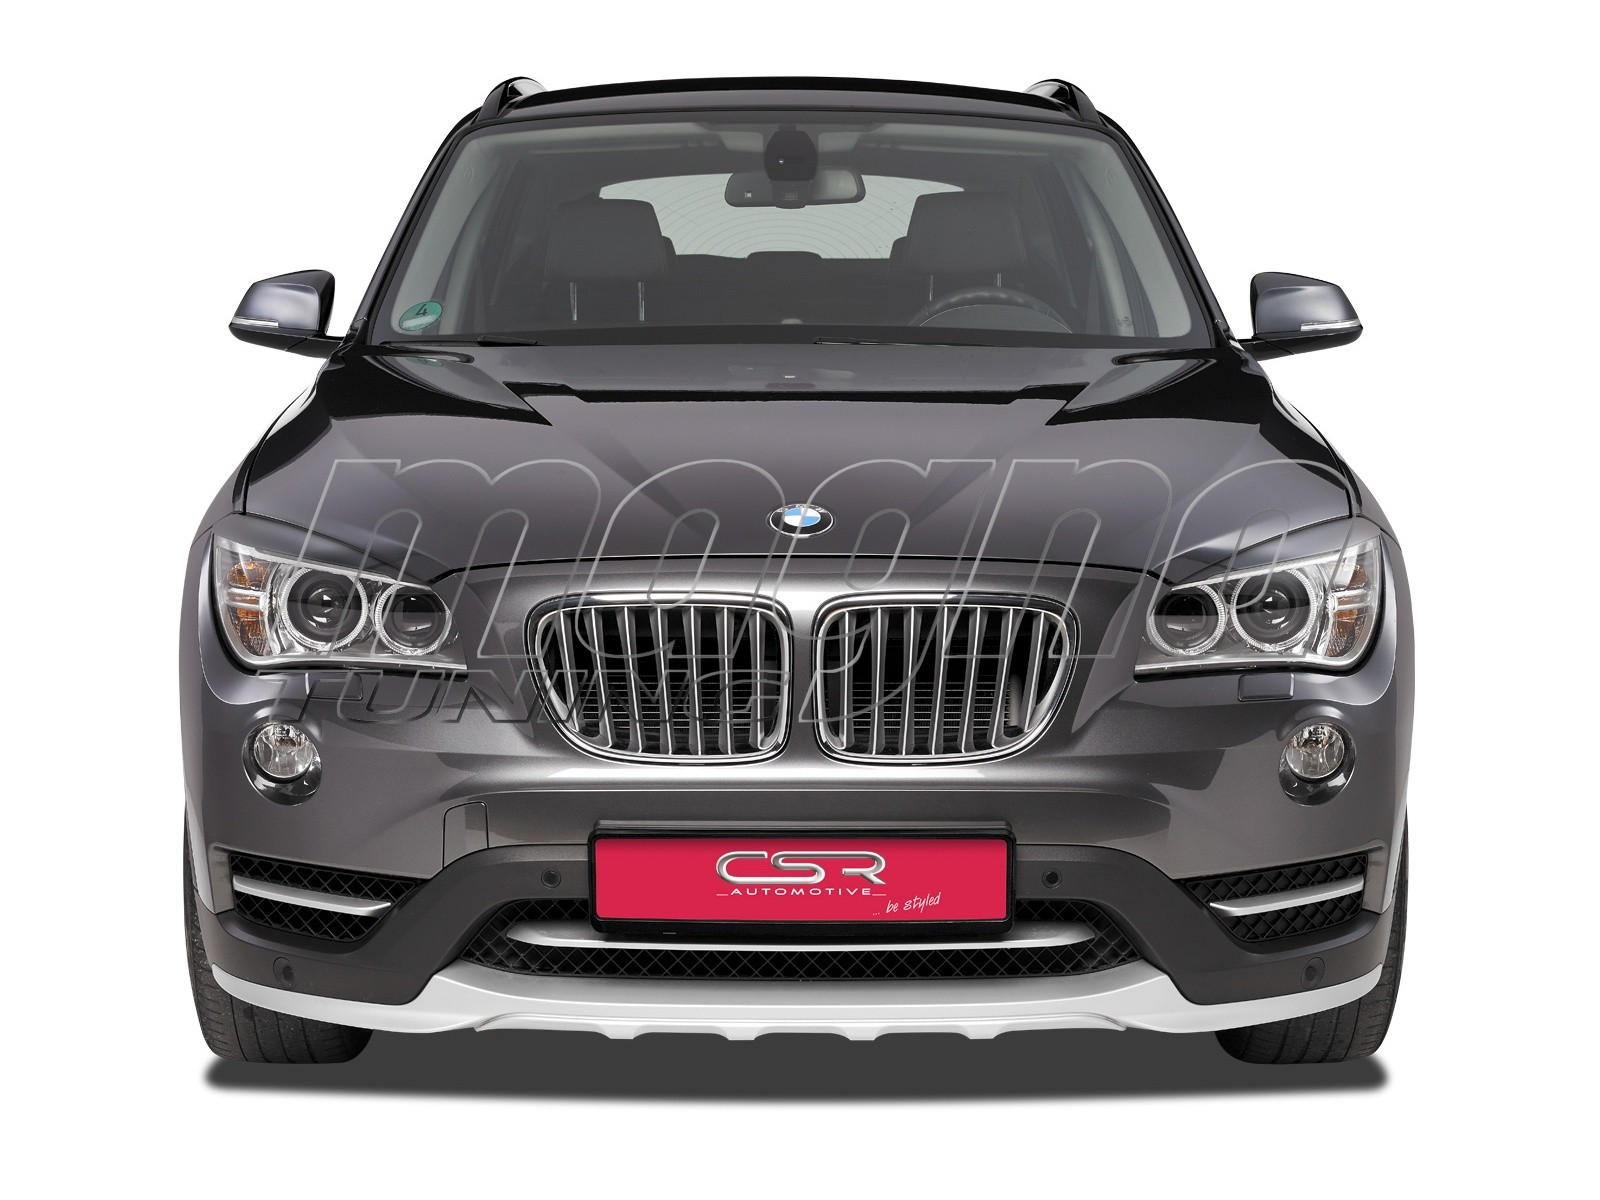 bmw x1 e84 facelift crono szemoldokok. Black Bedroom Furniture Sets. Home Design Ideas